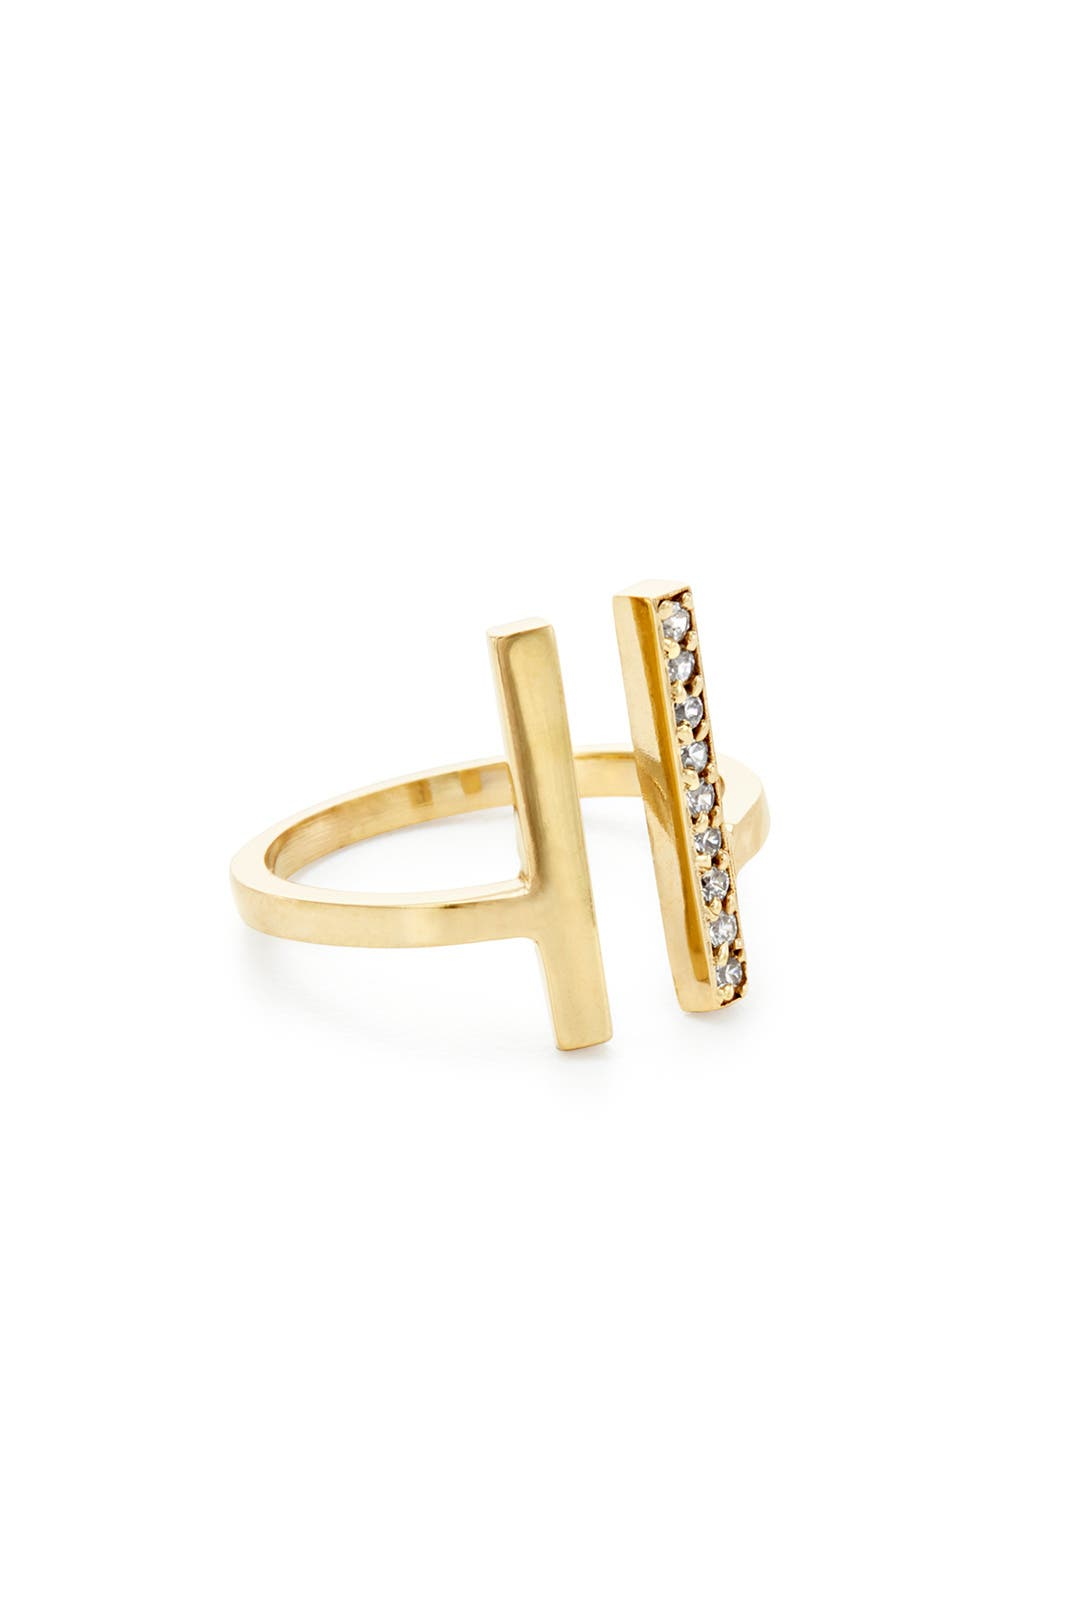 Tall Grass Ring by Campbell